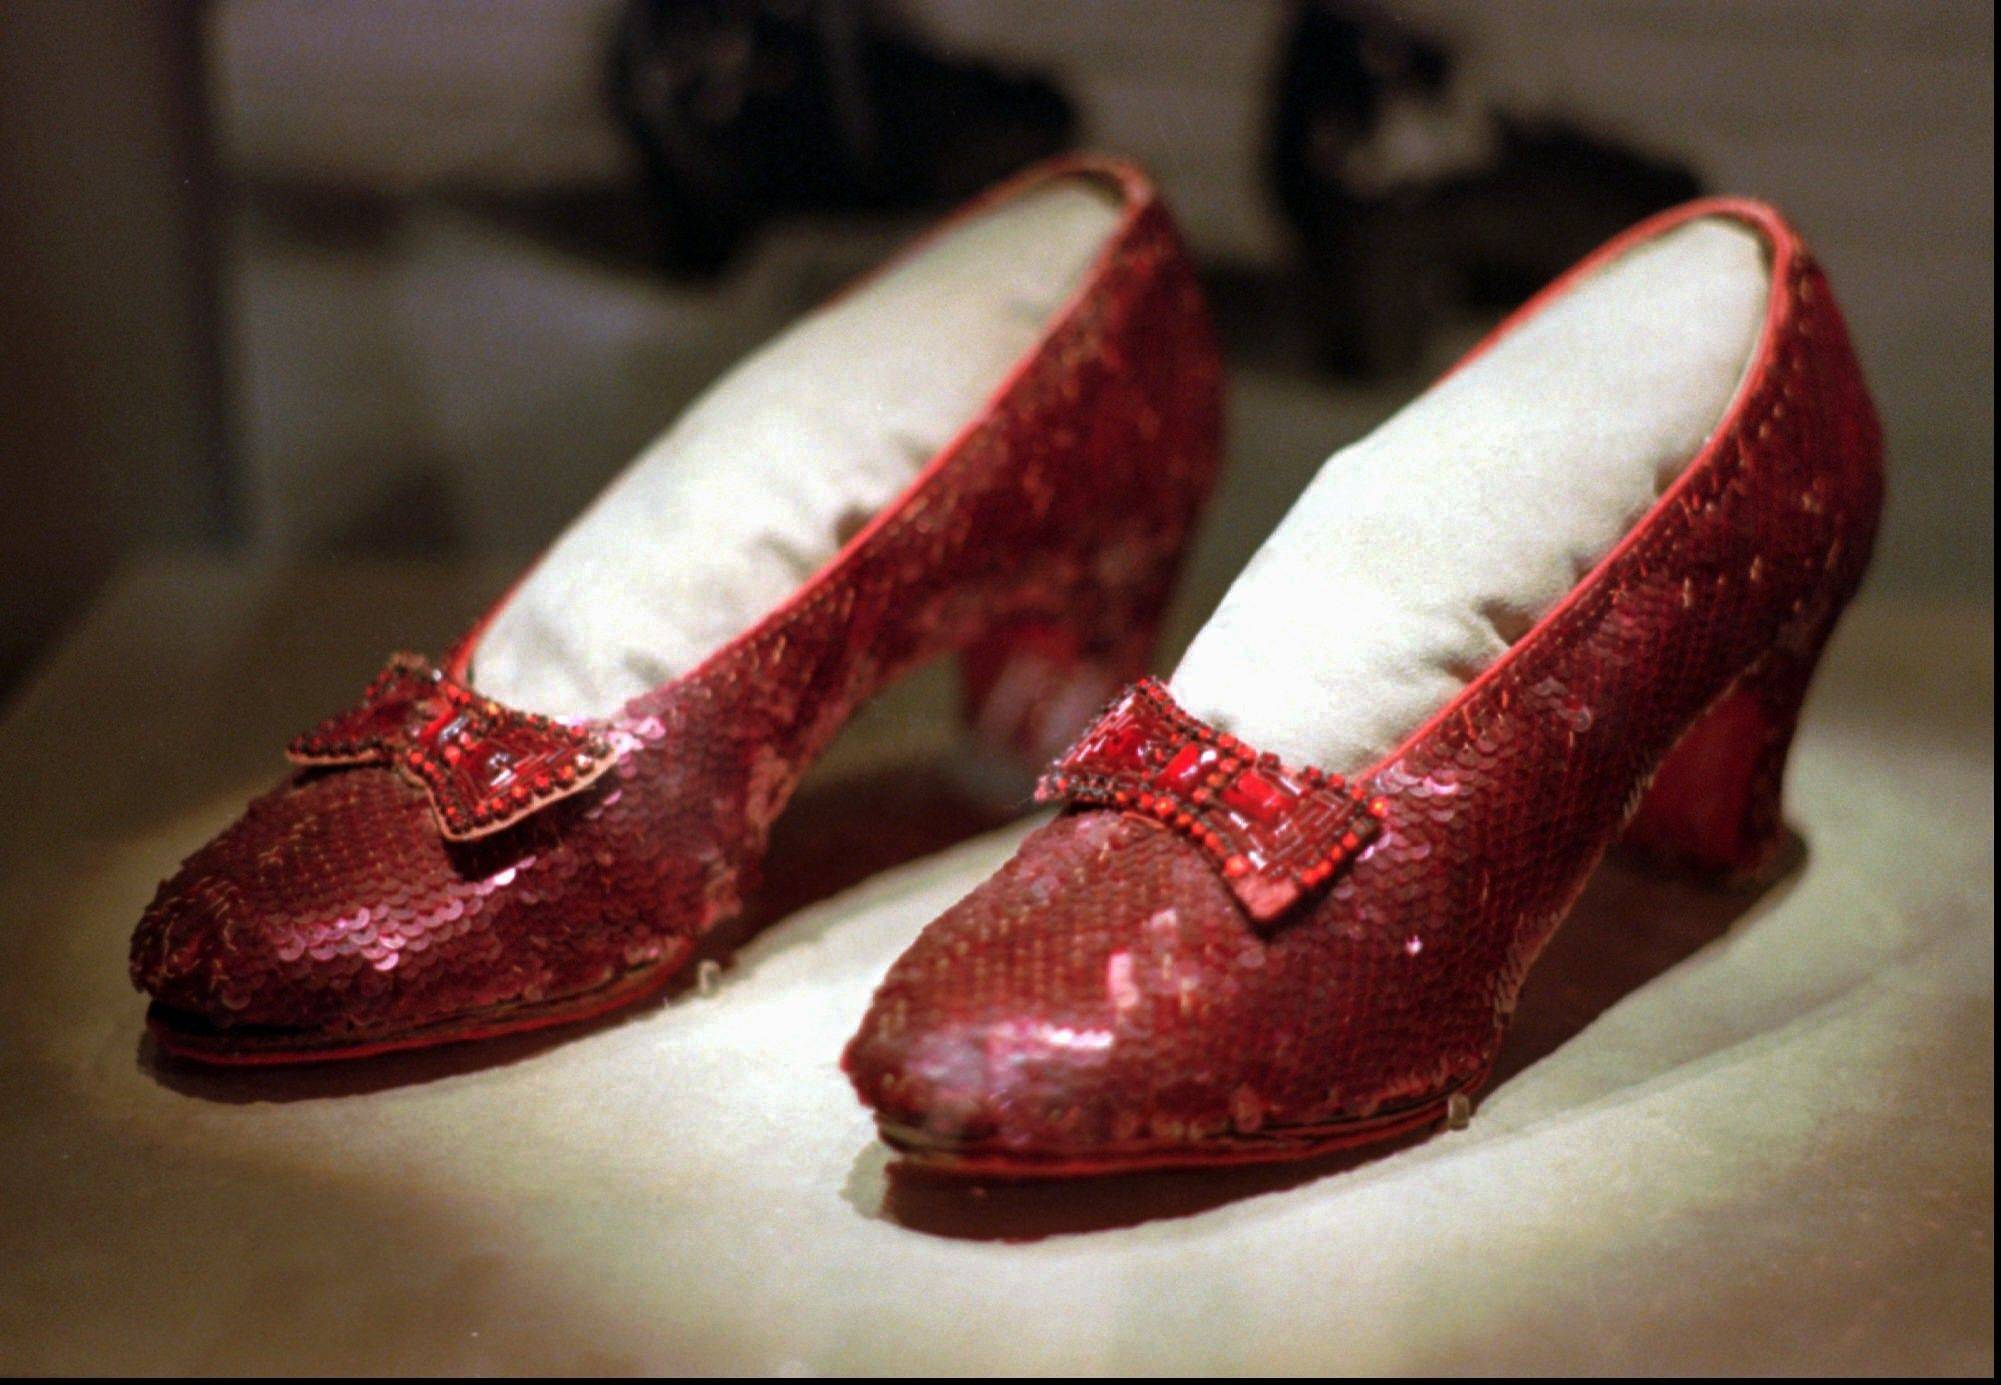 "The ruby slippers worn by Judy Garland in the 1939 film ""The Wizard of Oz"" are shown on display during a media tour of the ""America's Smithsonian"" exhibition in Kansas City, Mo. The ruby slippers are leaving the U.S. on their first international journey to London's Victoria and Albert Museum."